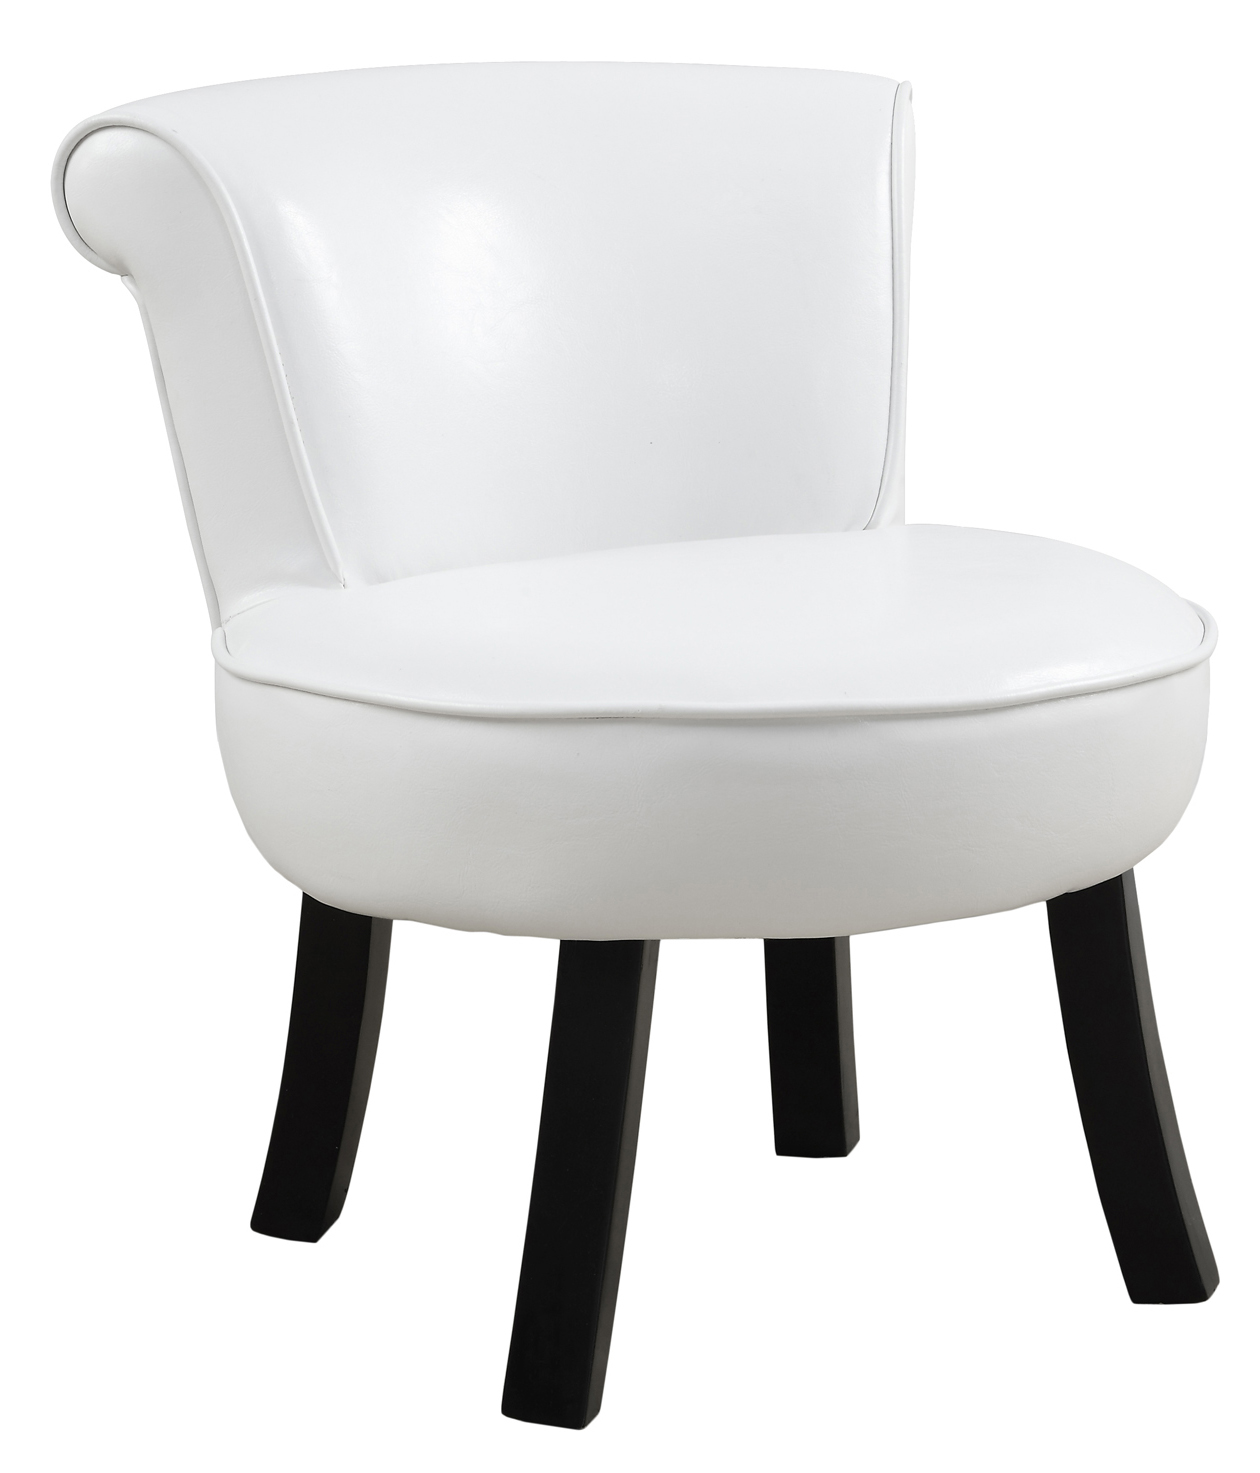 Juvenile Chair - White Leather-Look